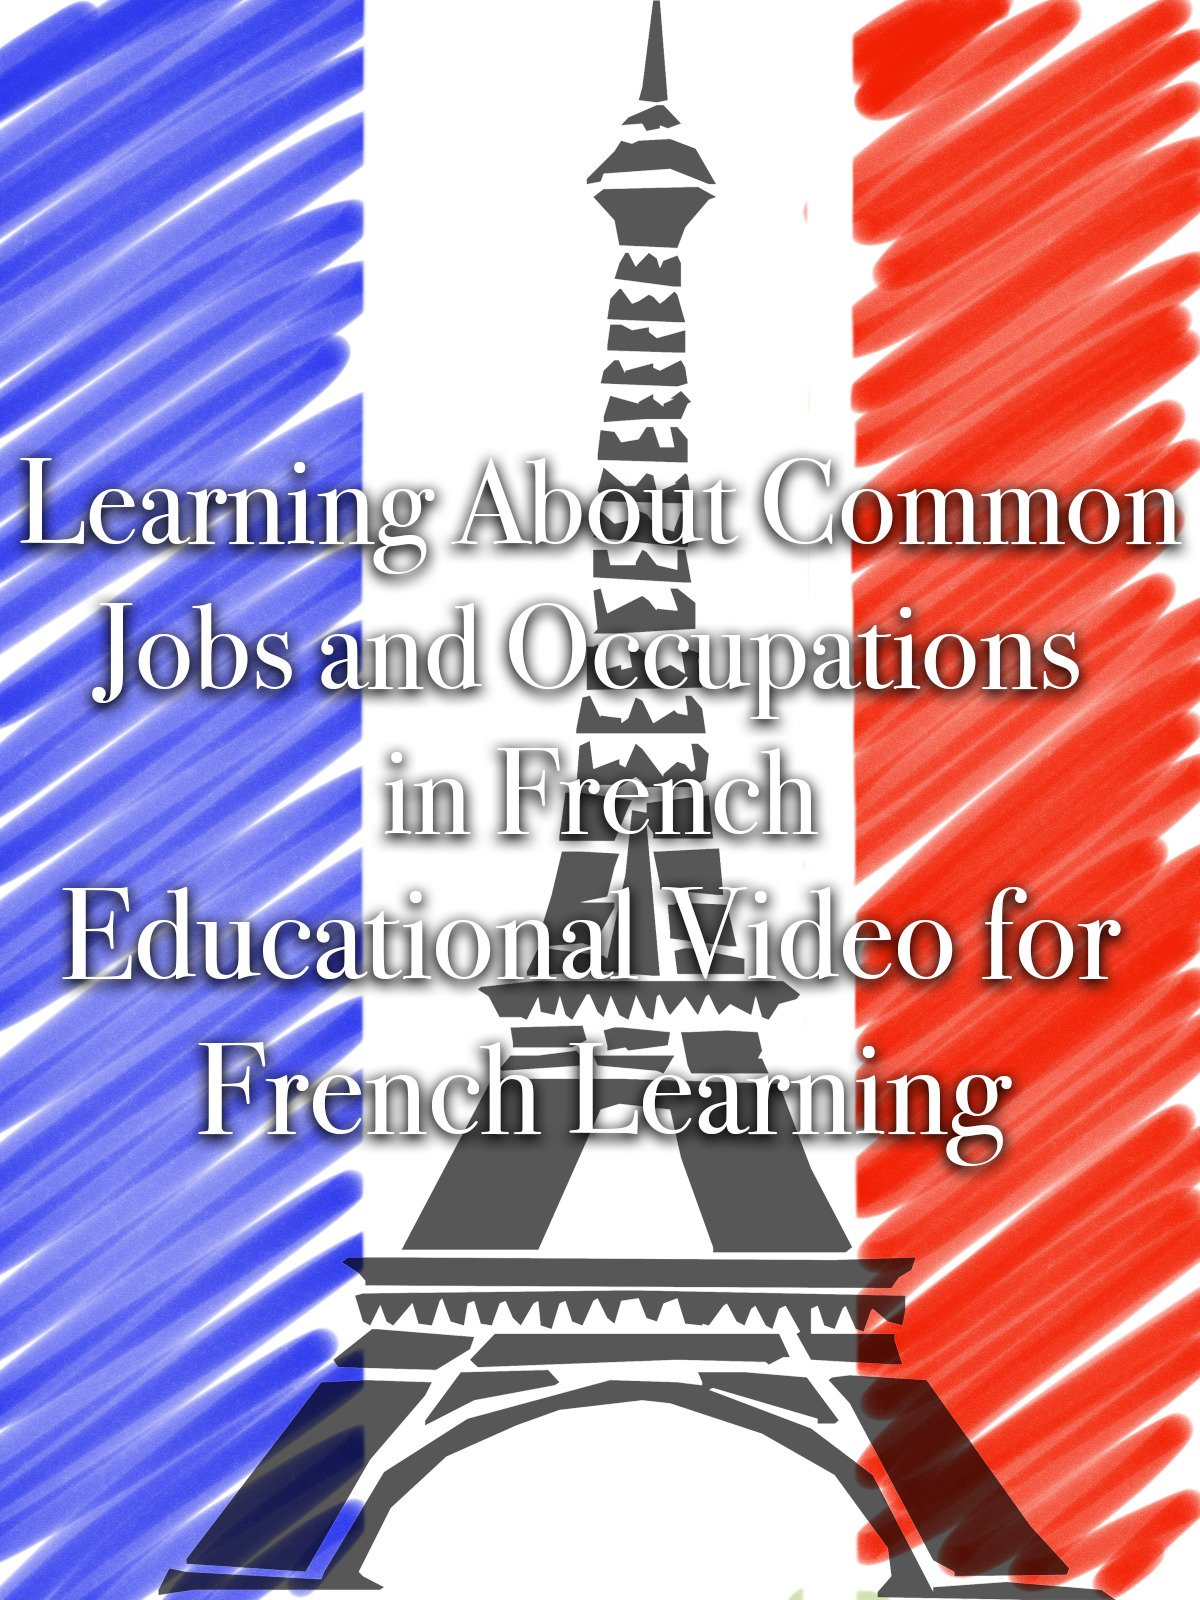 Learning About Common Jobs and Occupations in French Educational Video for French Learning